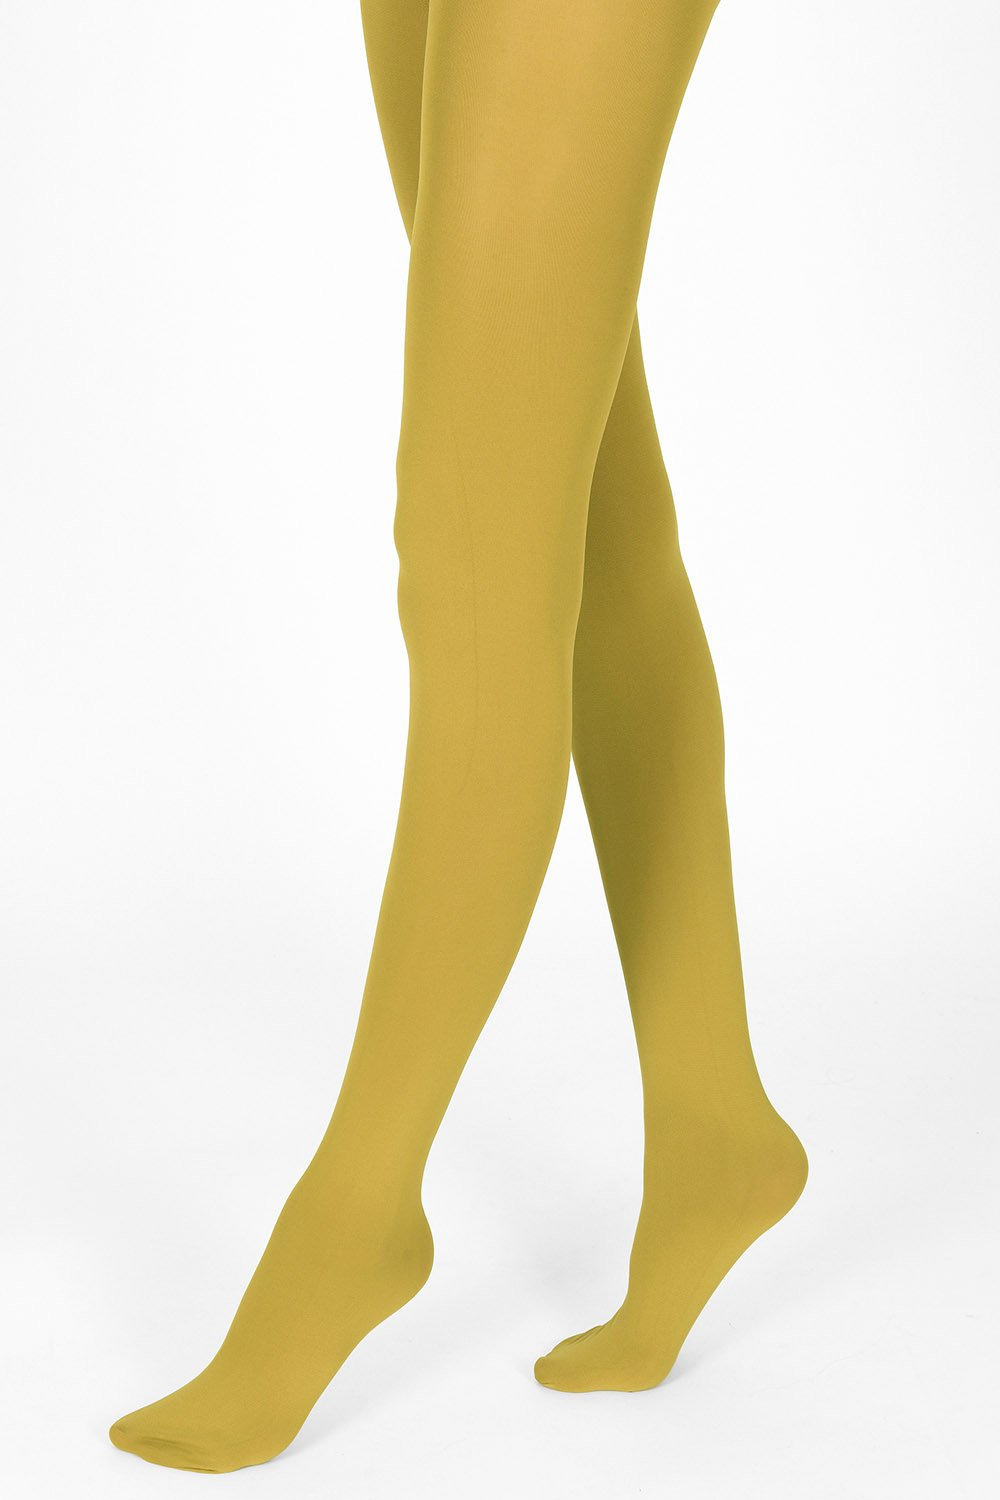 mustard tights 100 denier 1